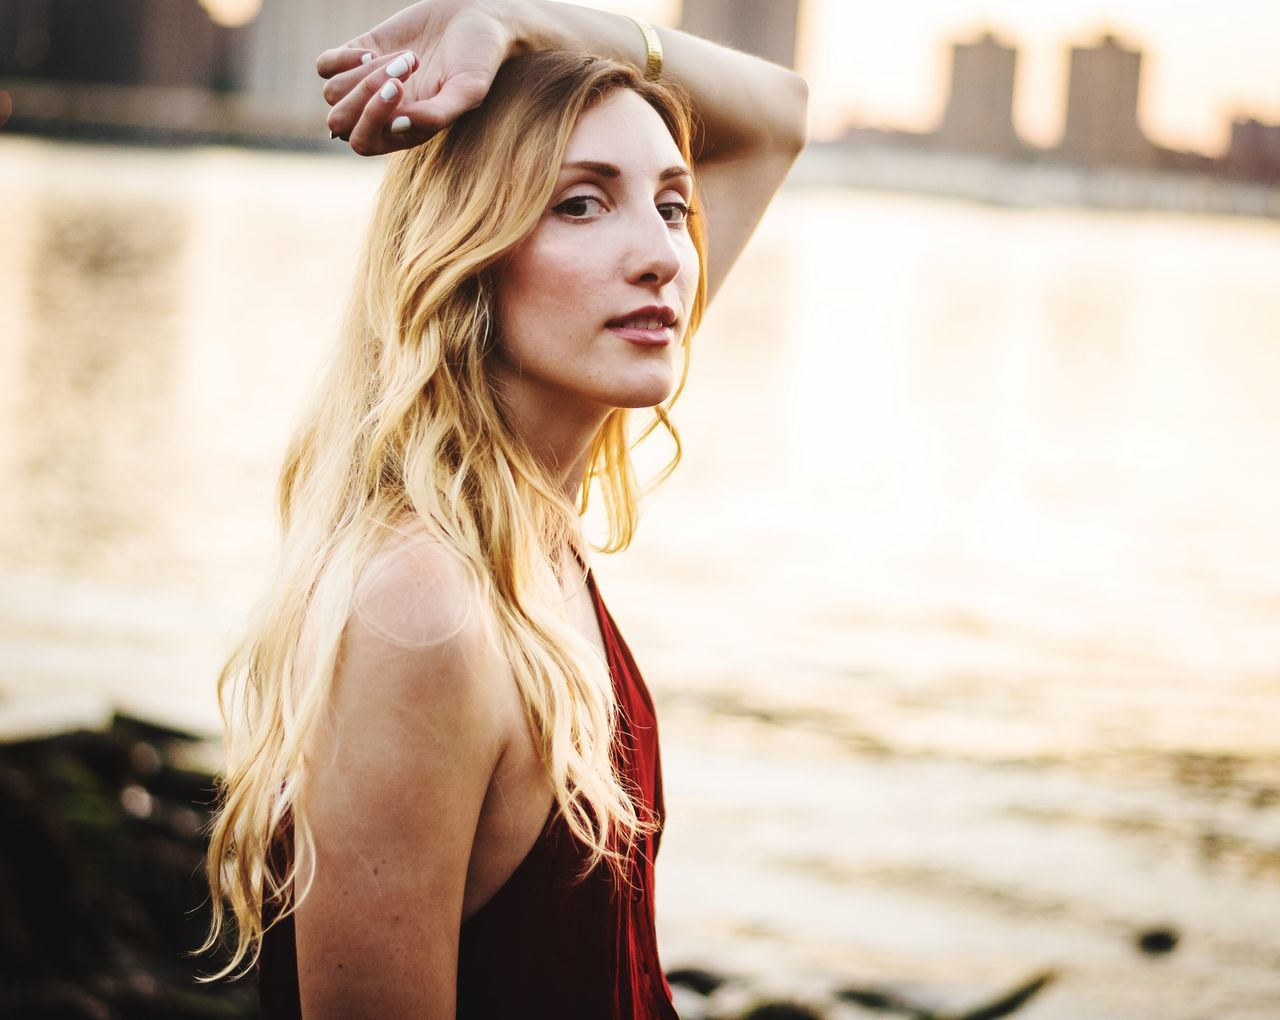 Real People One Person Young Adult Focus On Foreground Long Hair Blond Hair Leisure Activity Young Women Outdoors Portrait Day Beautiful Woman Lifestyles People Photography Lifestyle Fashion Photographer Photooftheday Happiness Water Beautiful People Beauty NYC Model